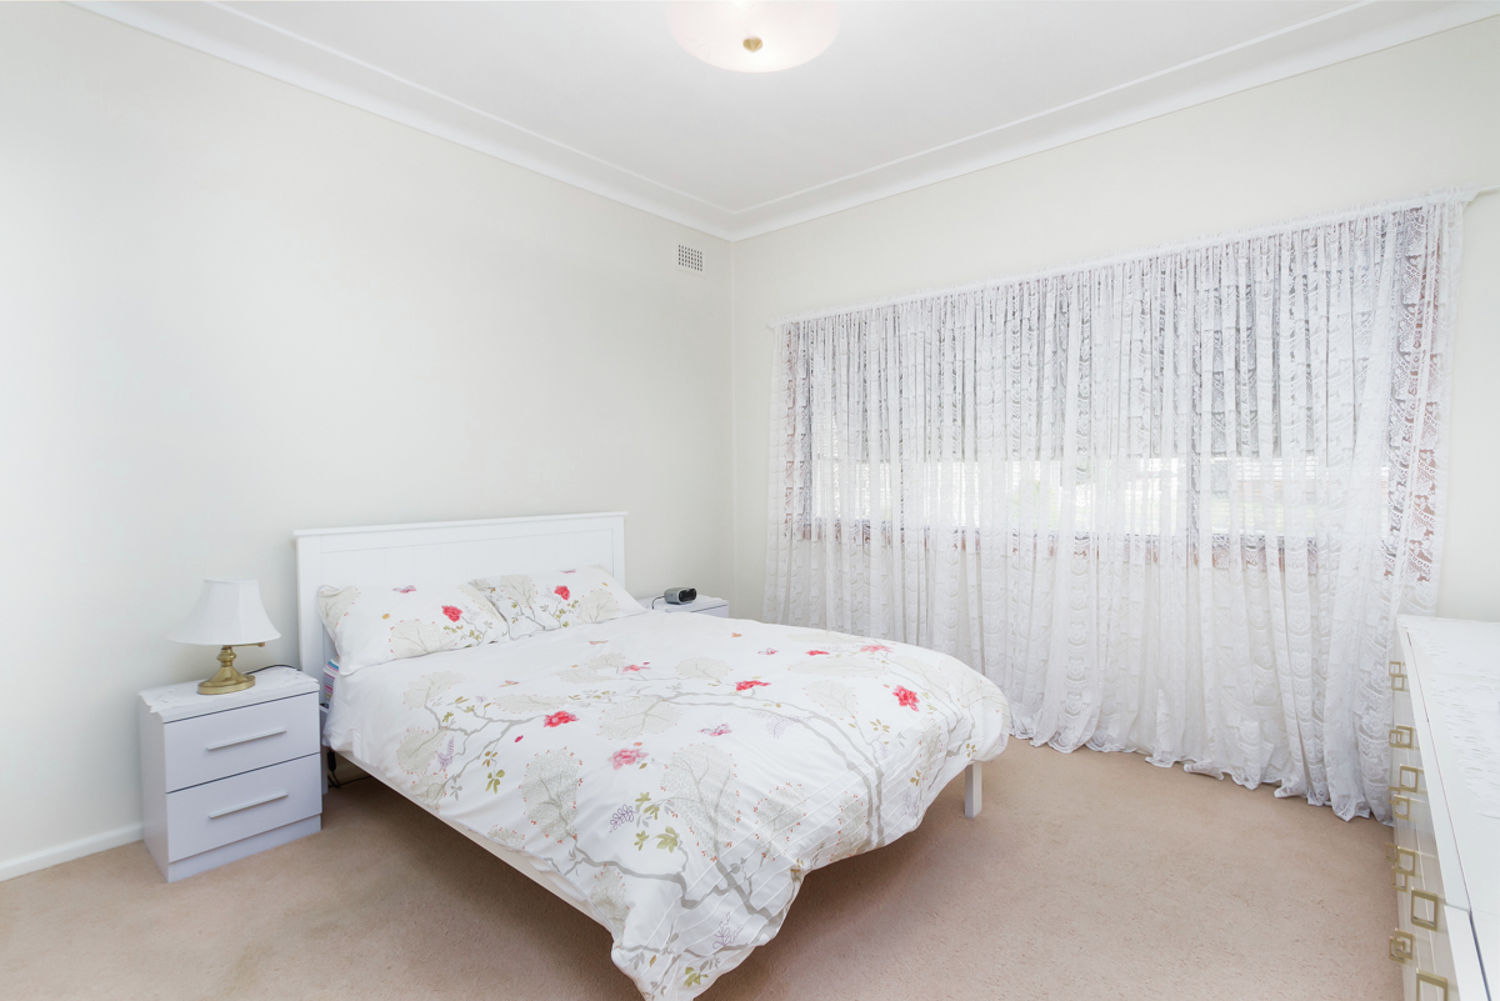 Open for inspection in Old Toongabbie